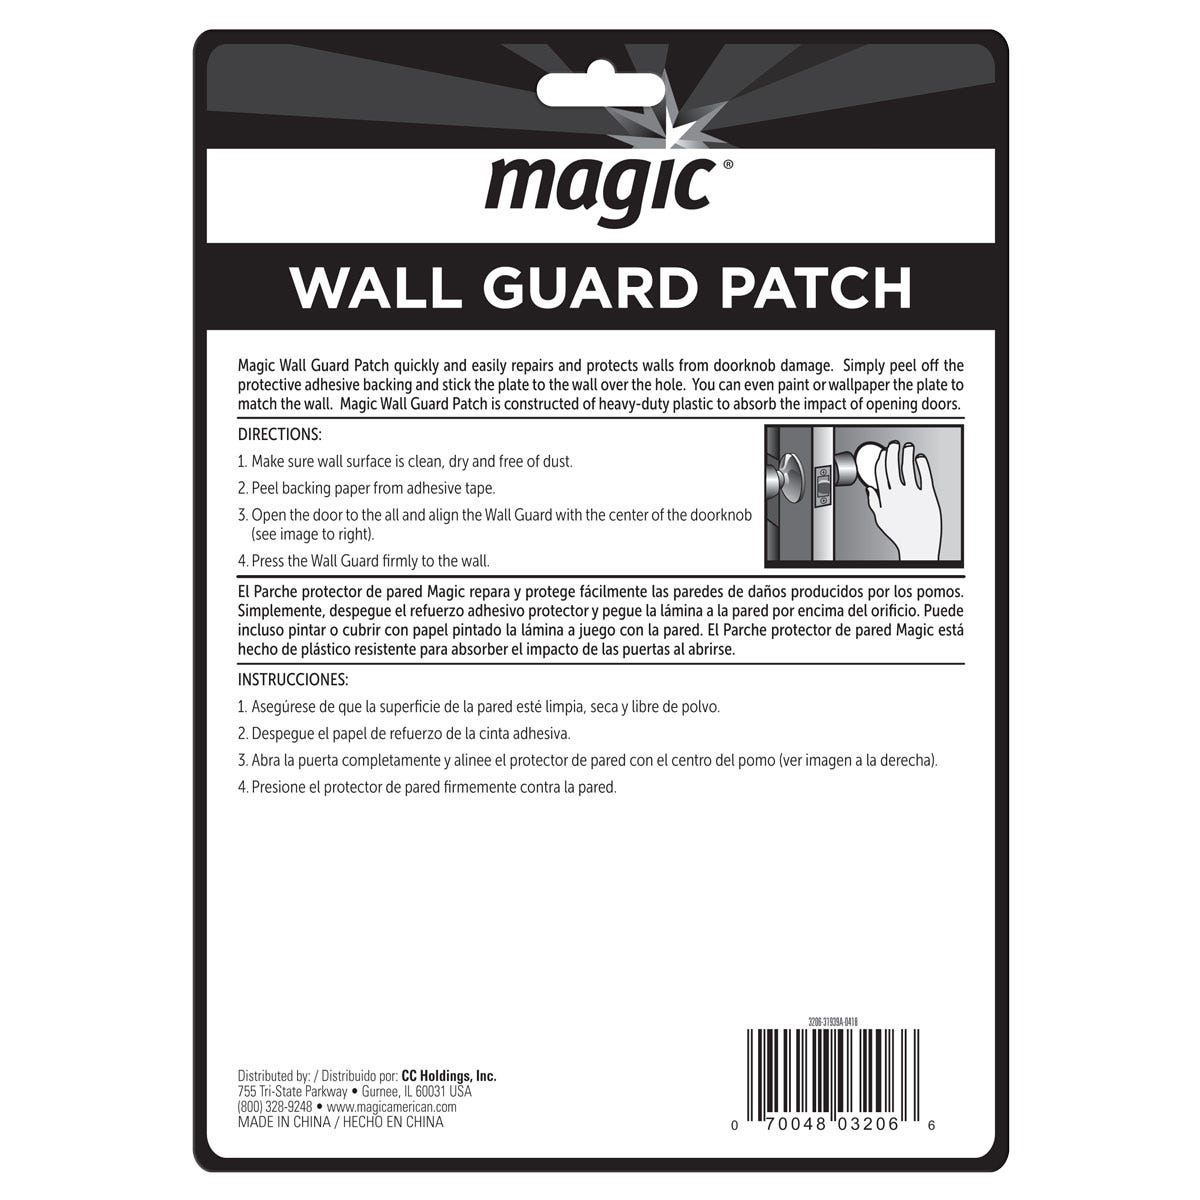 Wall Guard Patch Back Label